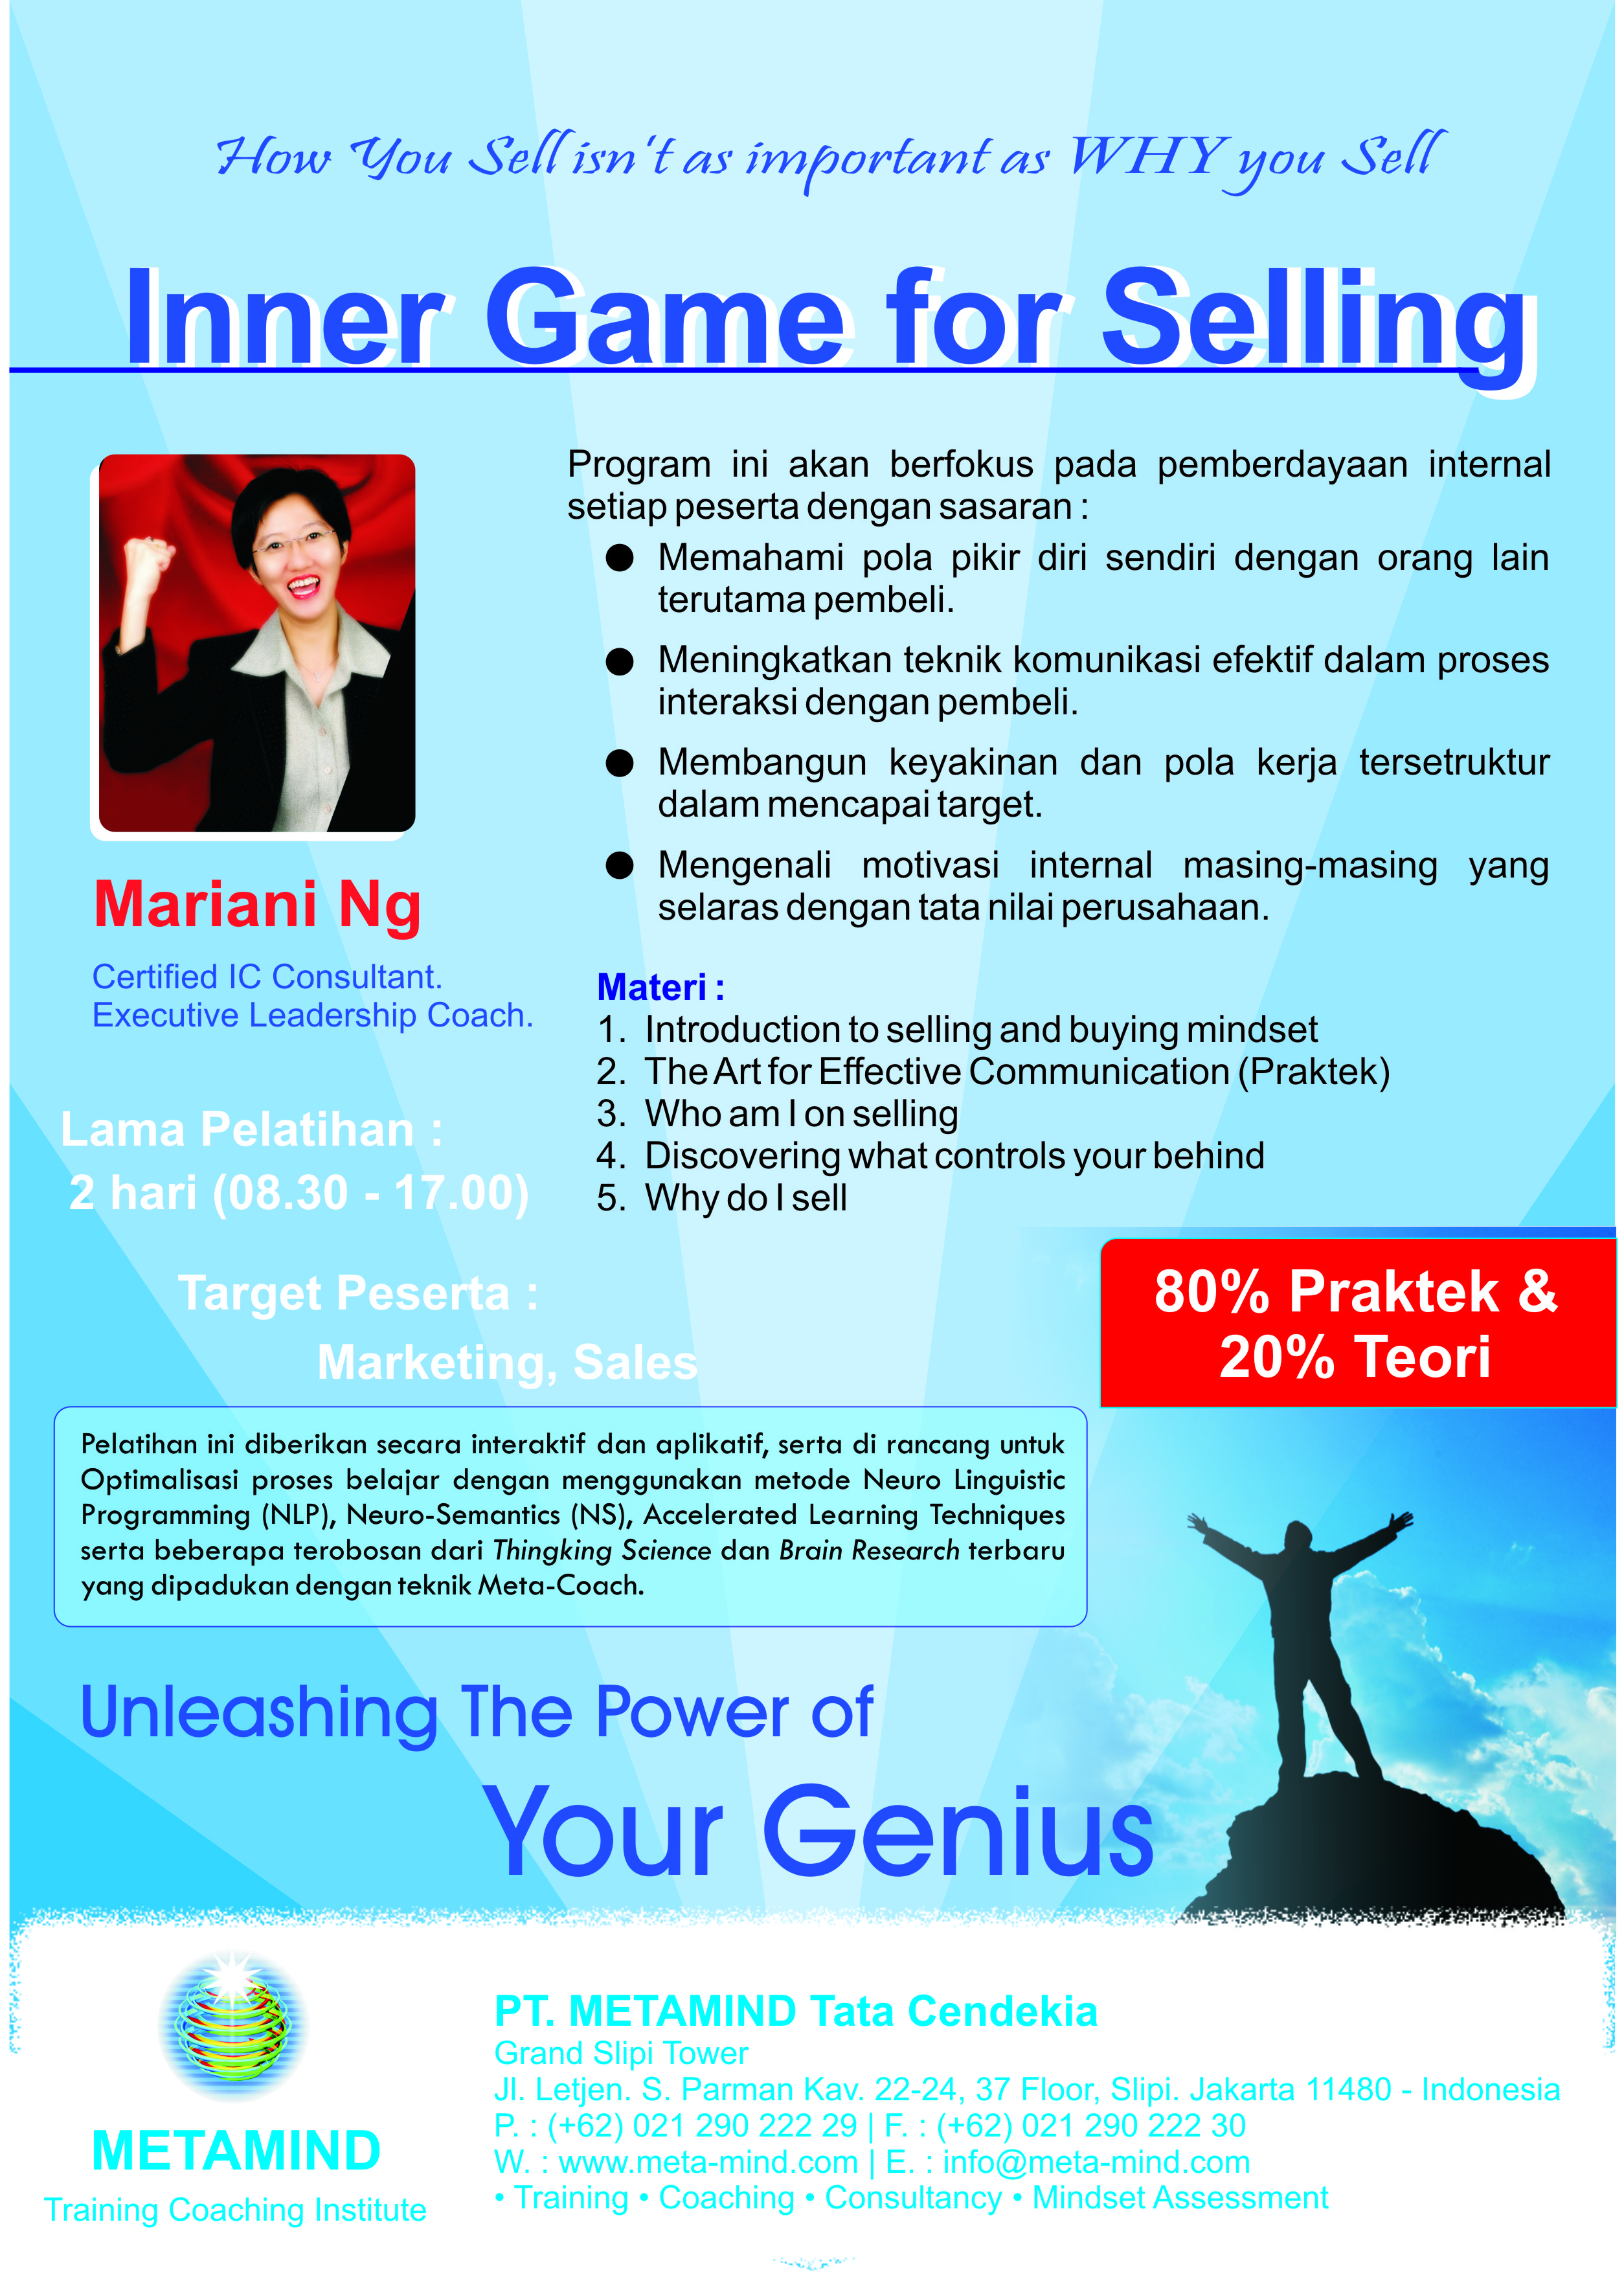 innergame for selling